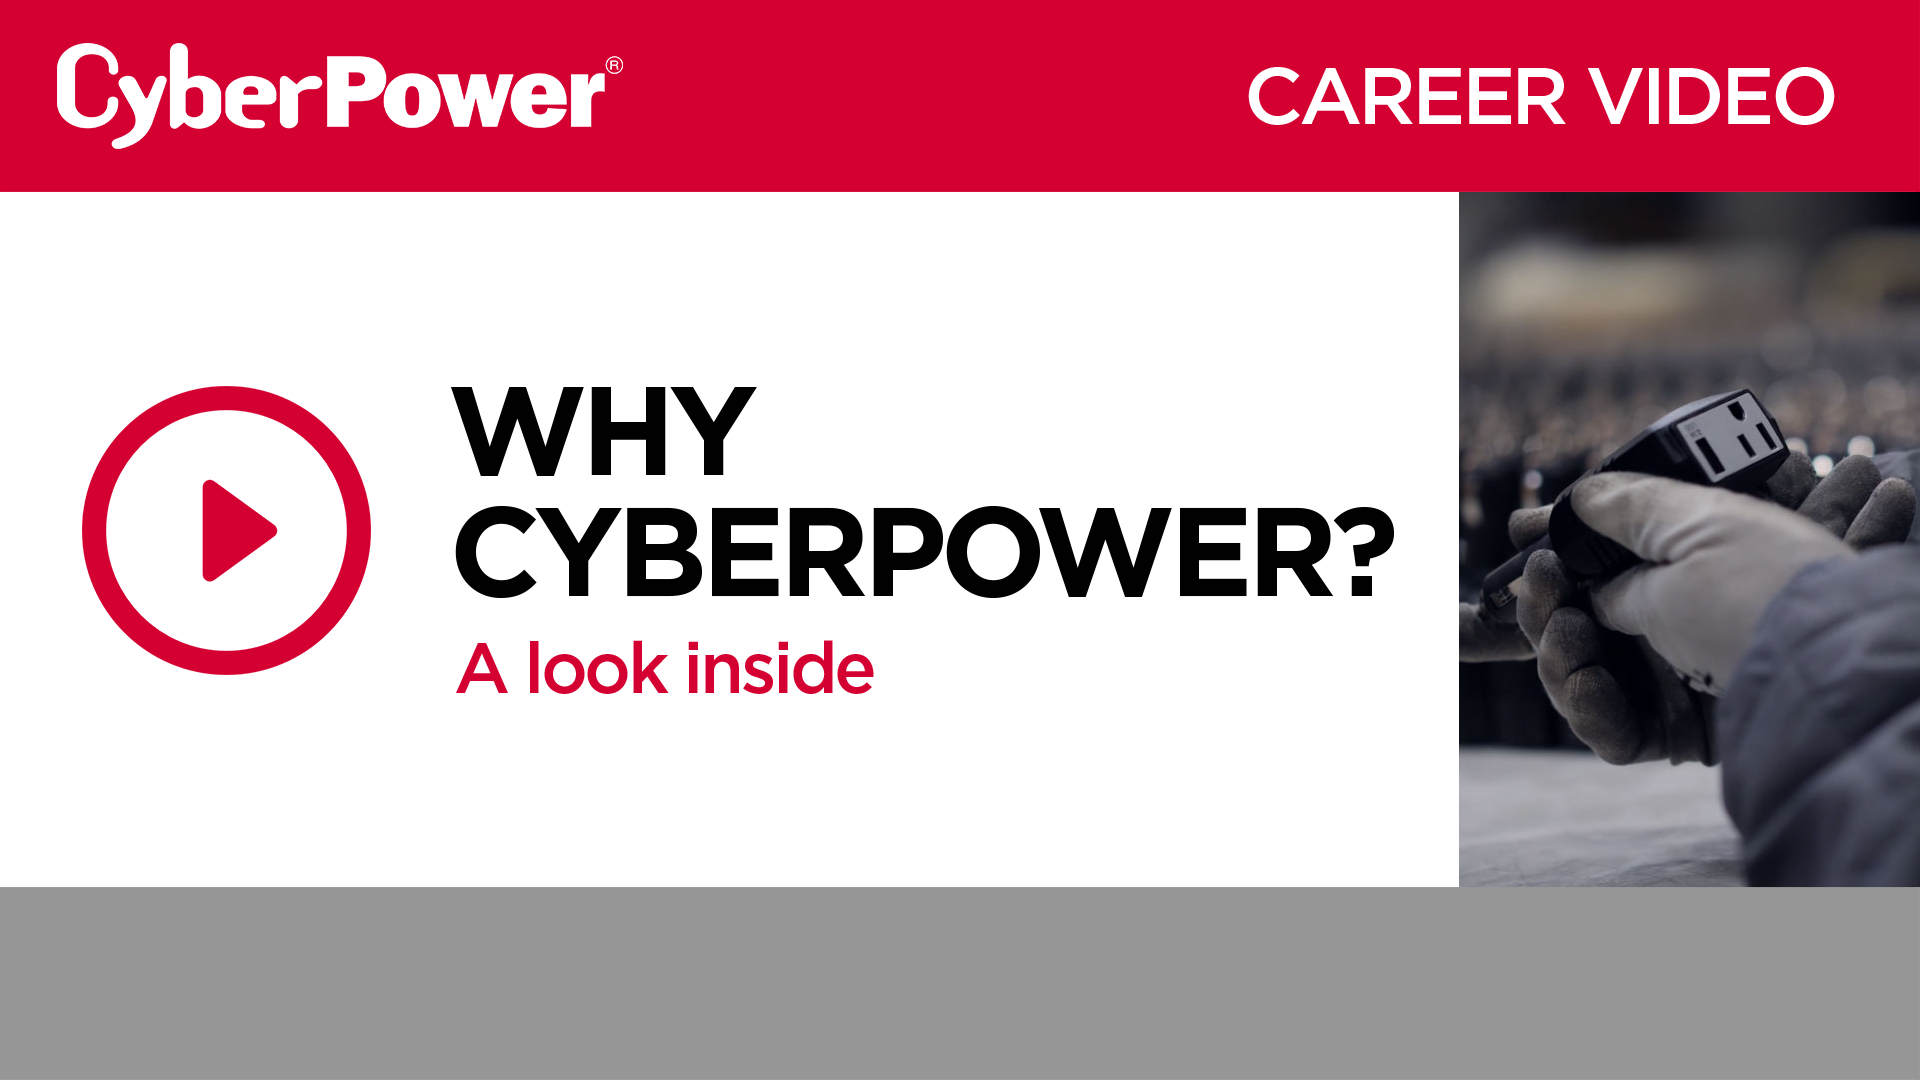 Why CyberPower? A look inside